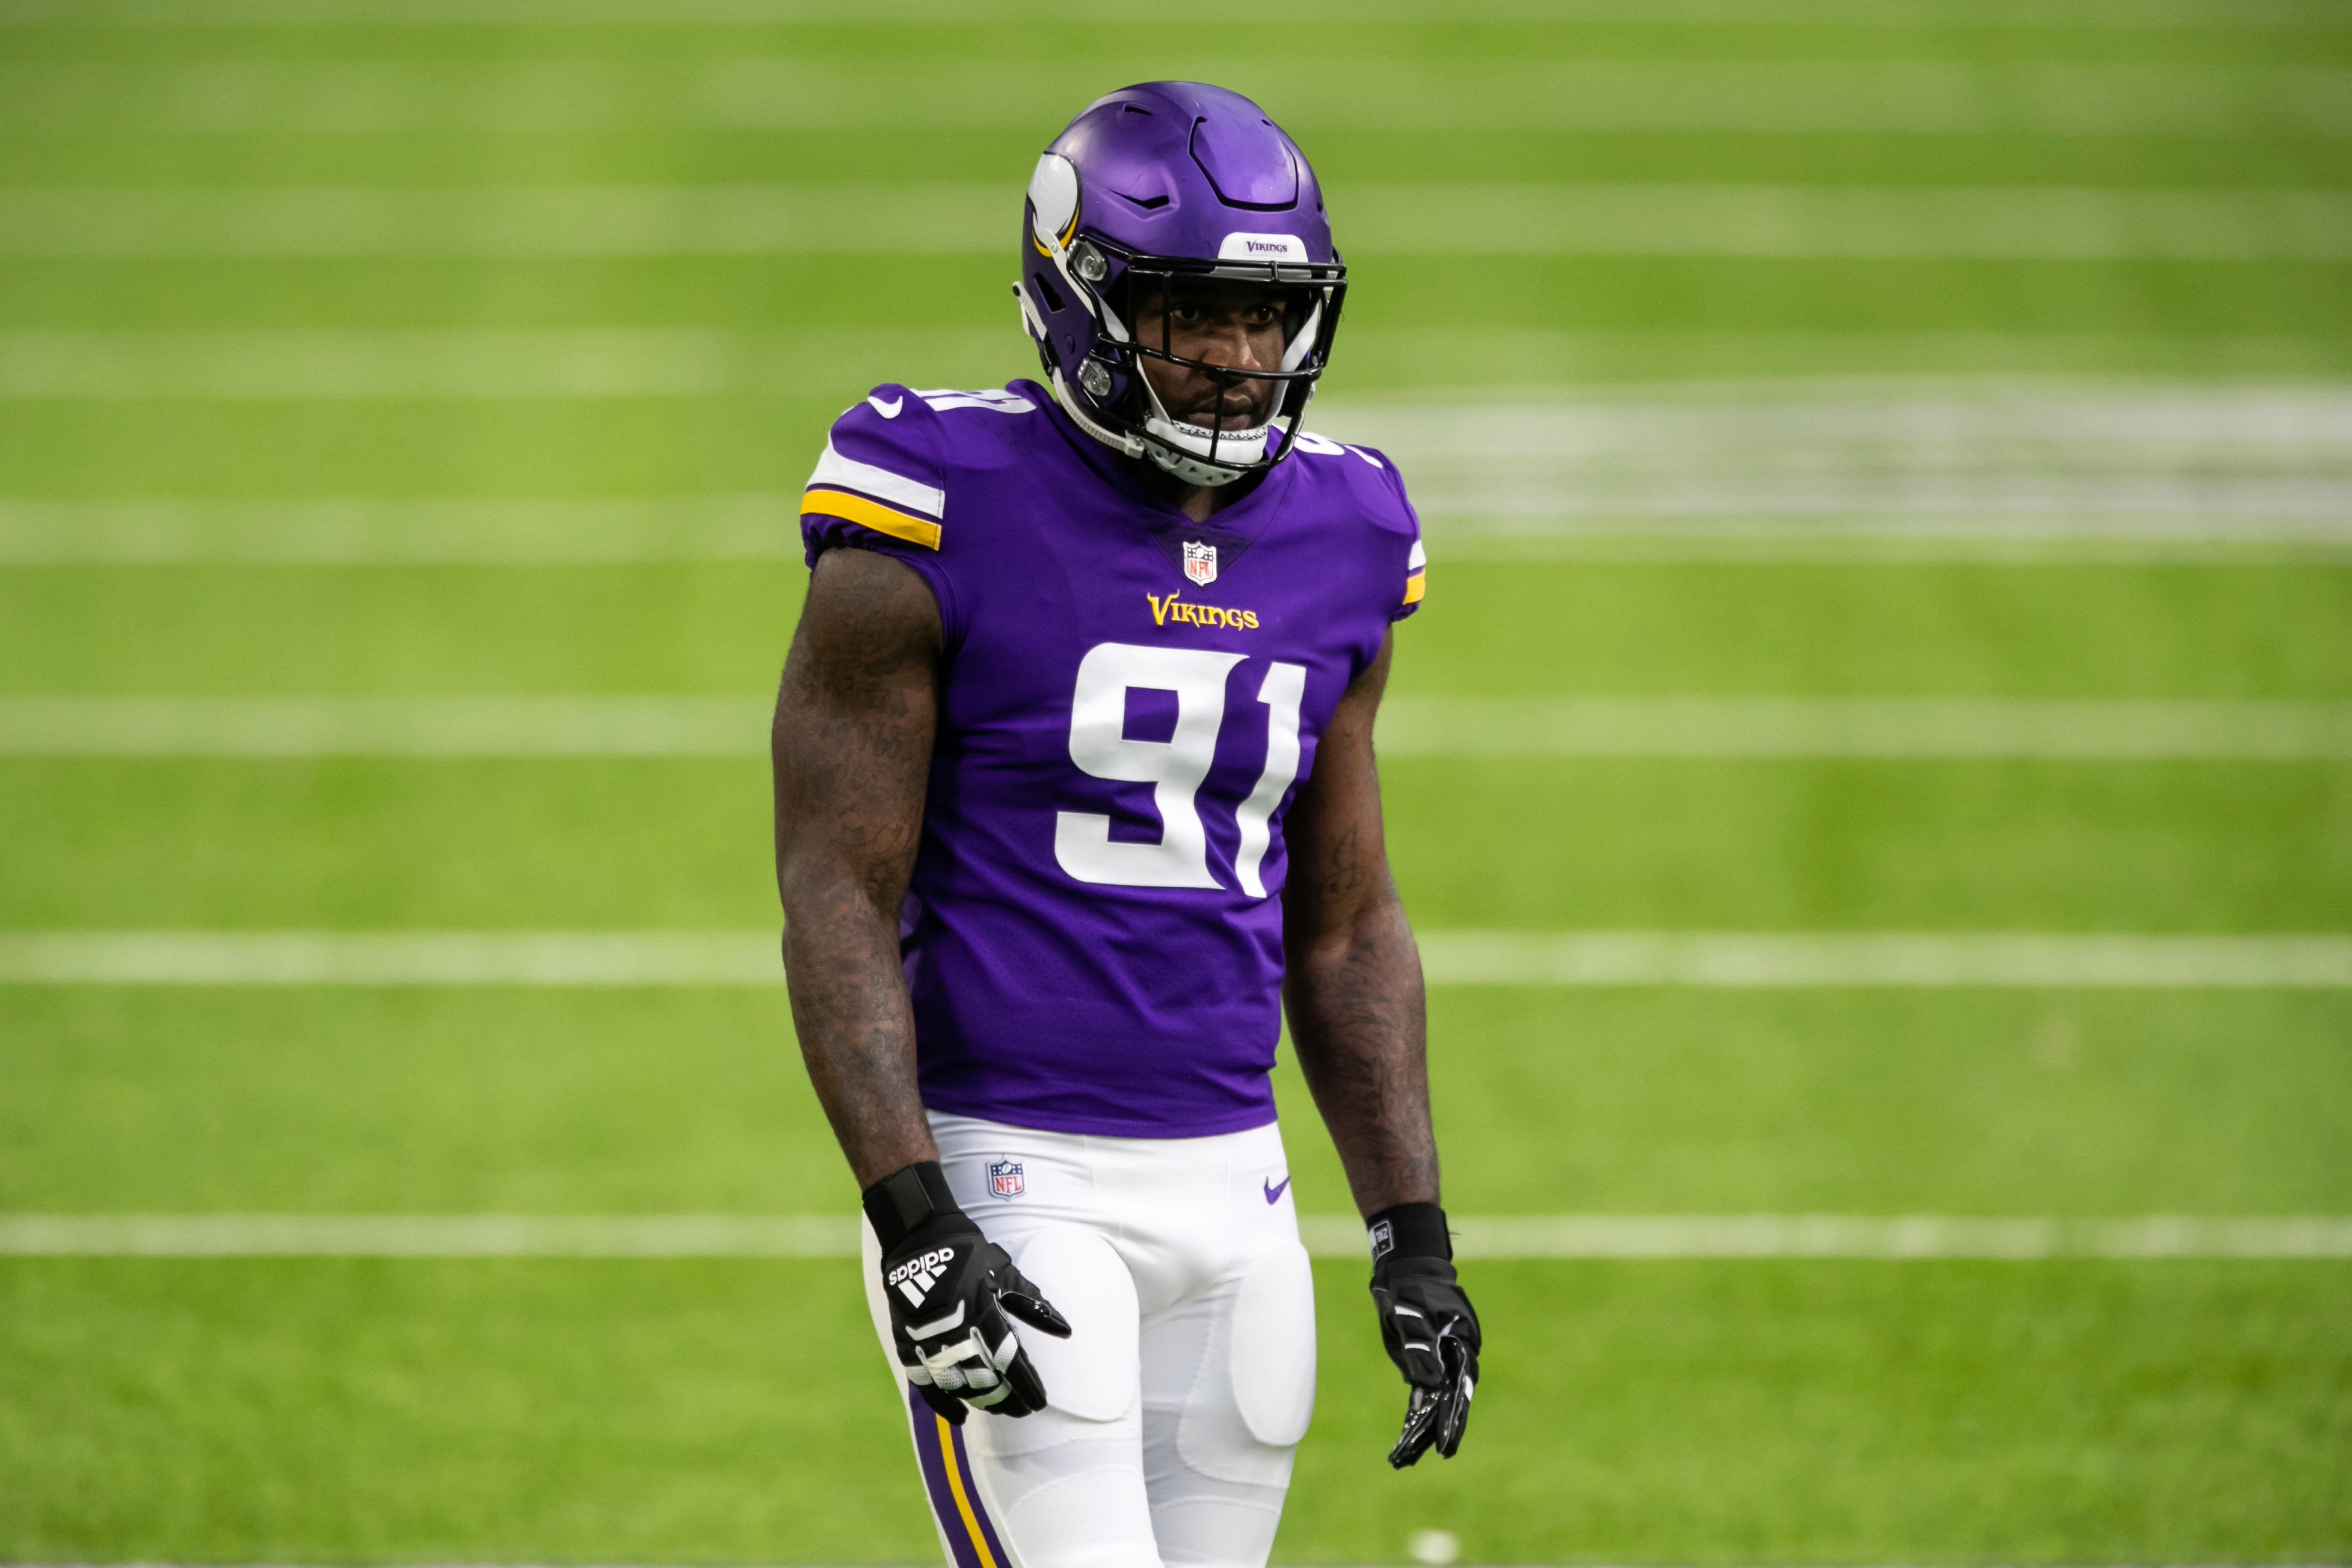 Vikings trade standout DE Yannick Ngakoue to Ravens after six games